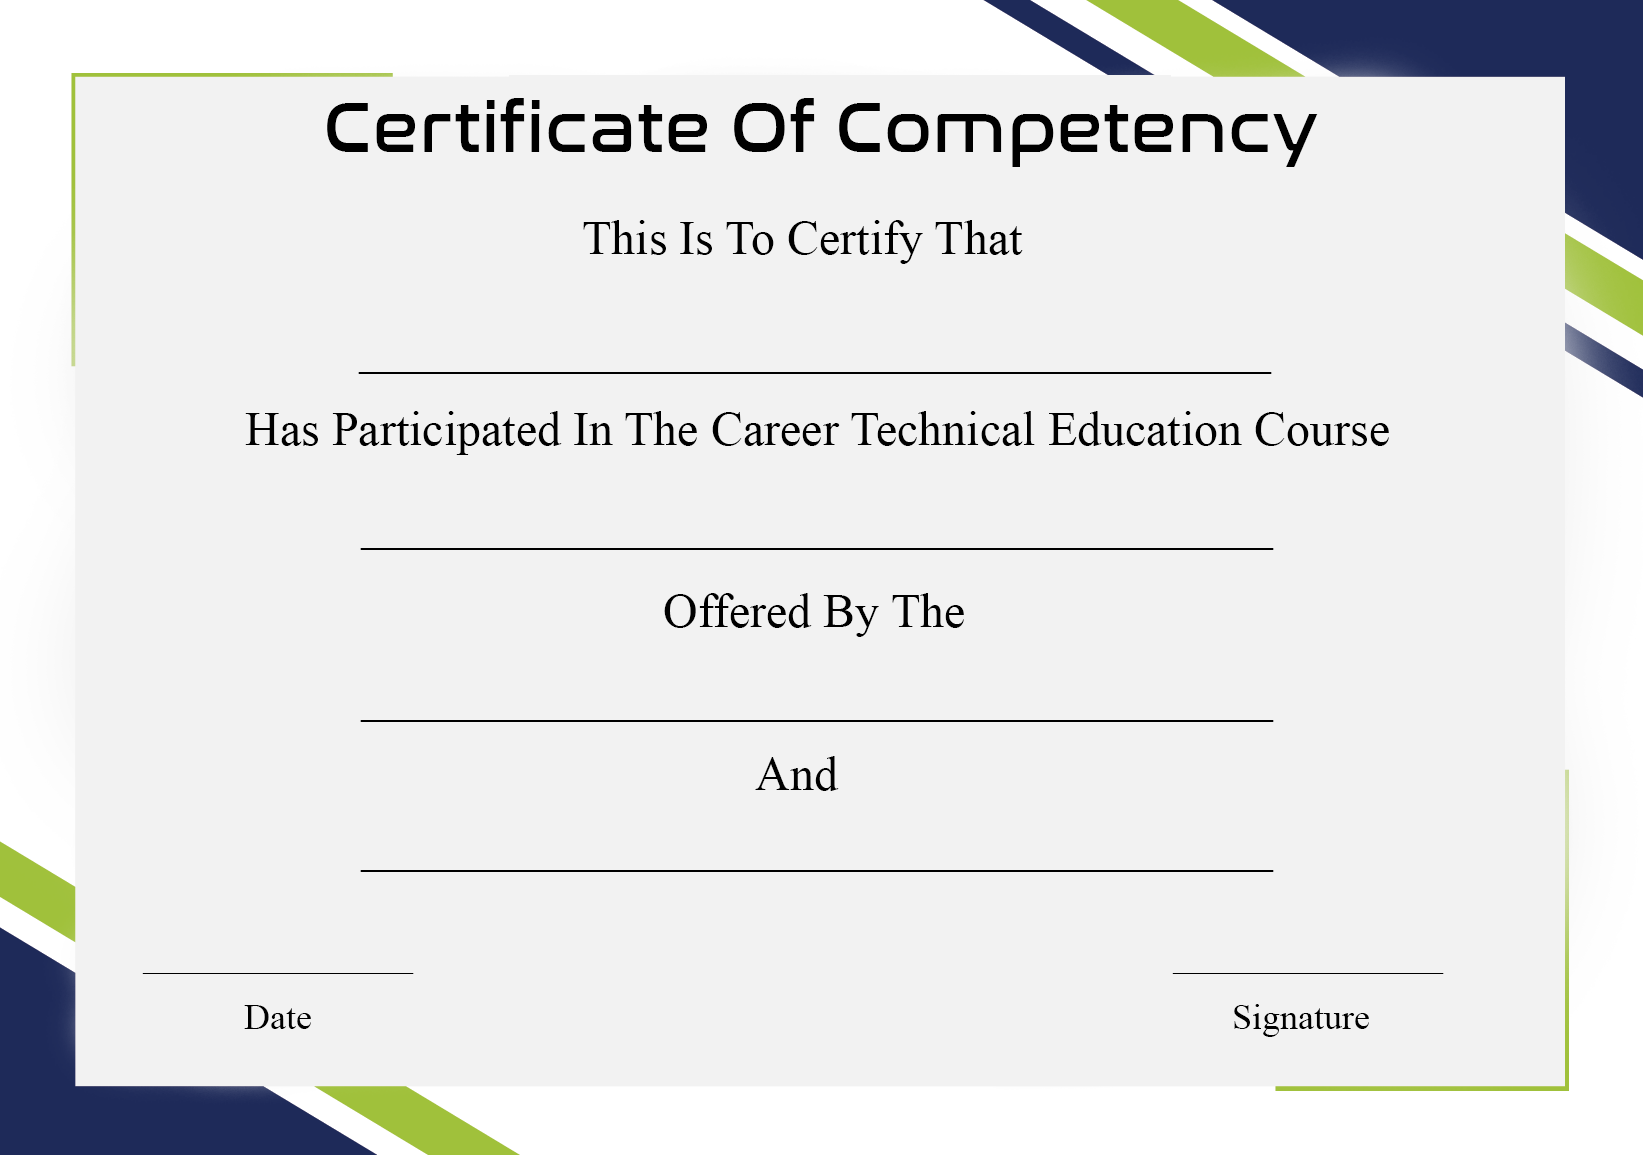 Certificate of Competency Sample